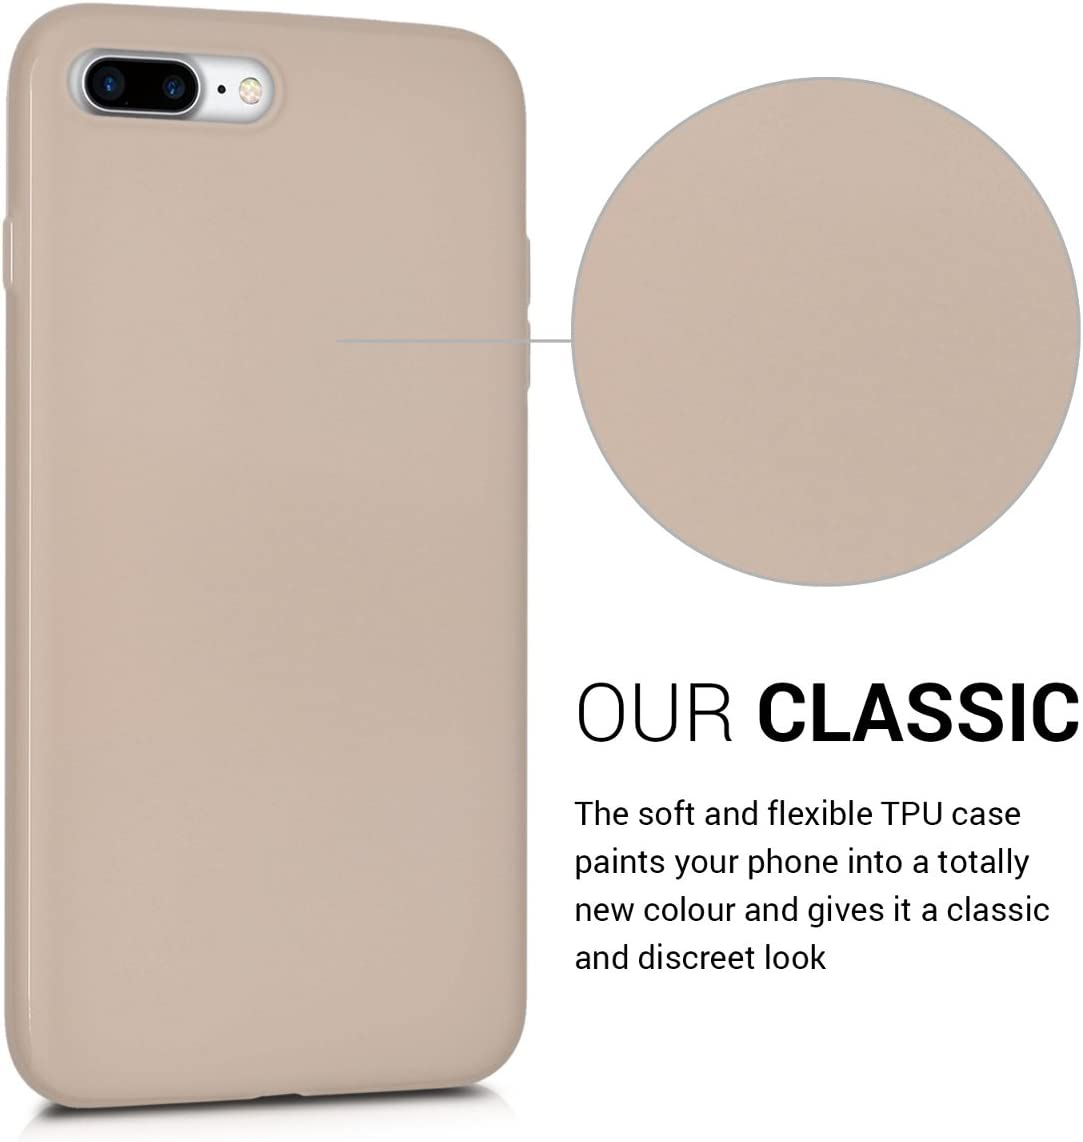 kwmobile TPU Case Compatible with Apple iPhone 7 Plus / 8 Plus - Case Soft Slim Smooth Flexible Protective Phone Cover - Beige Matte